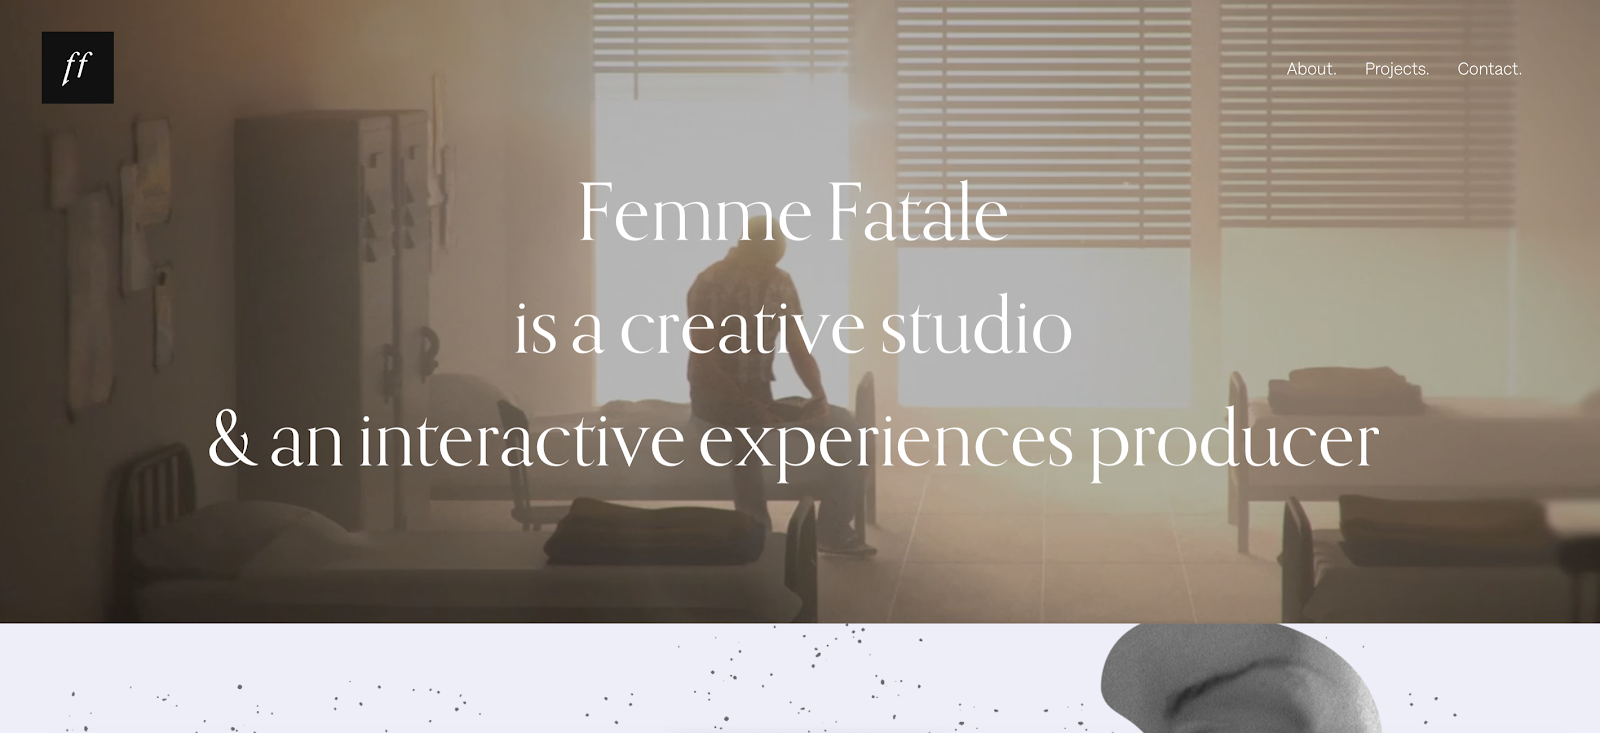 Web Developer Portfolio of Femme Fatale